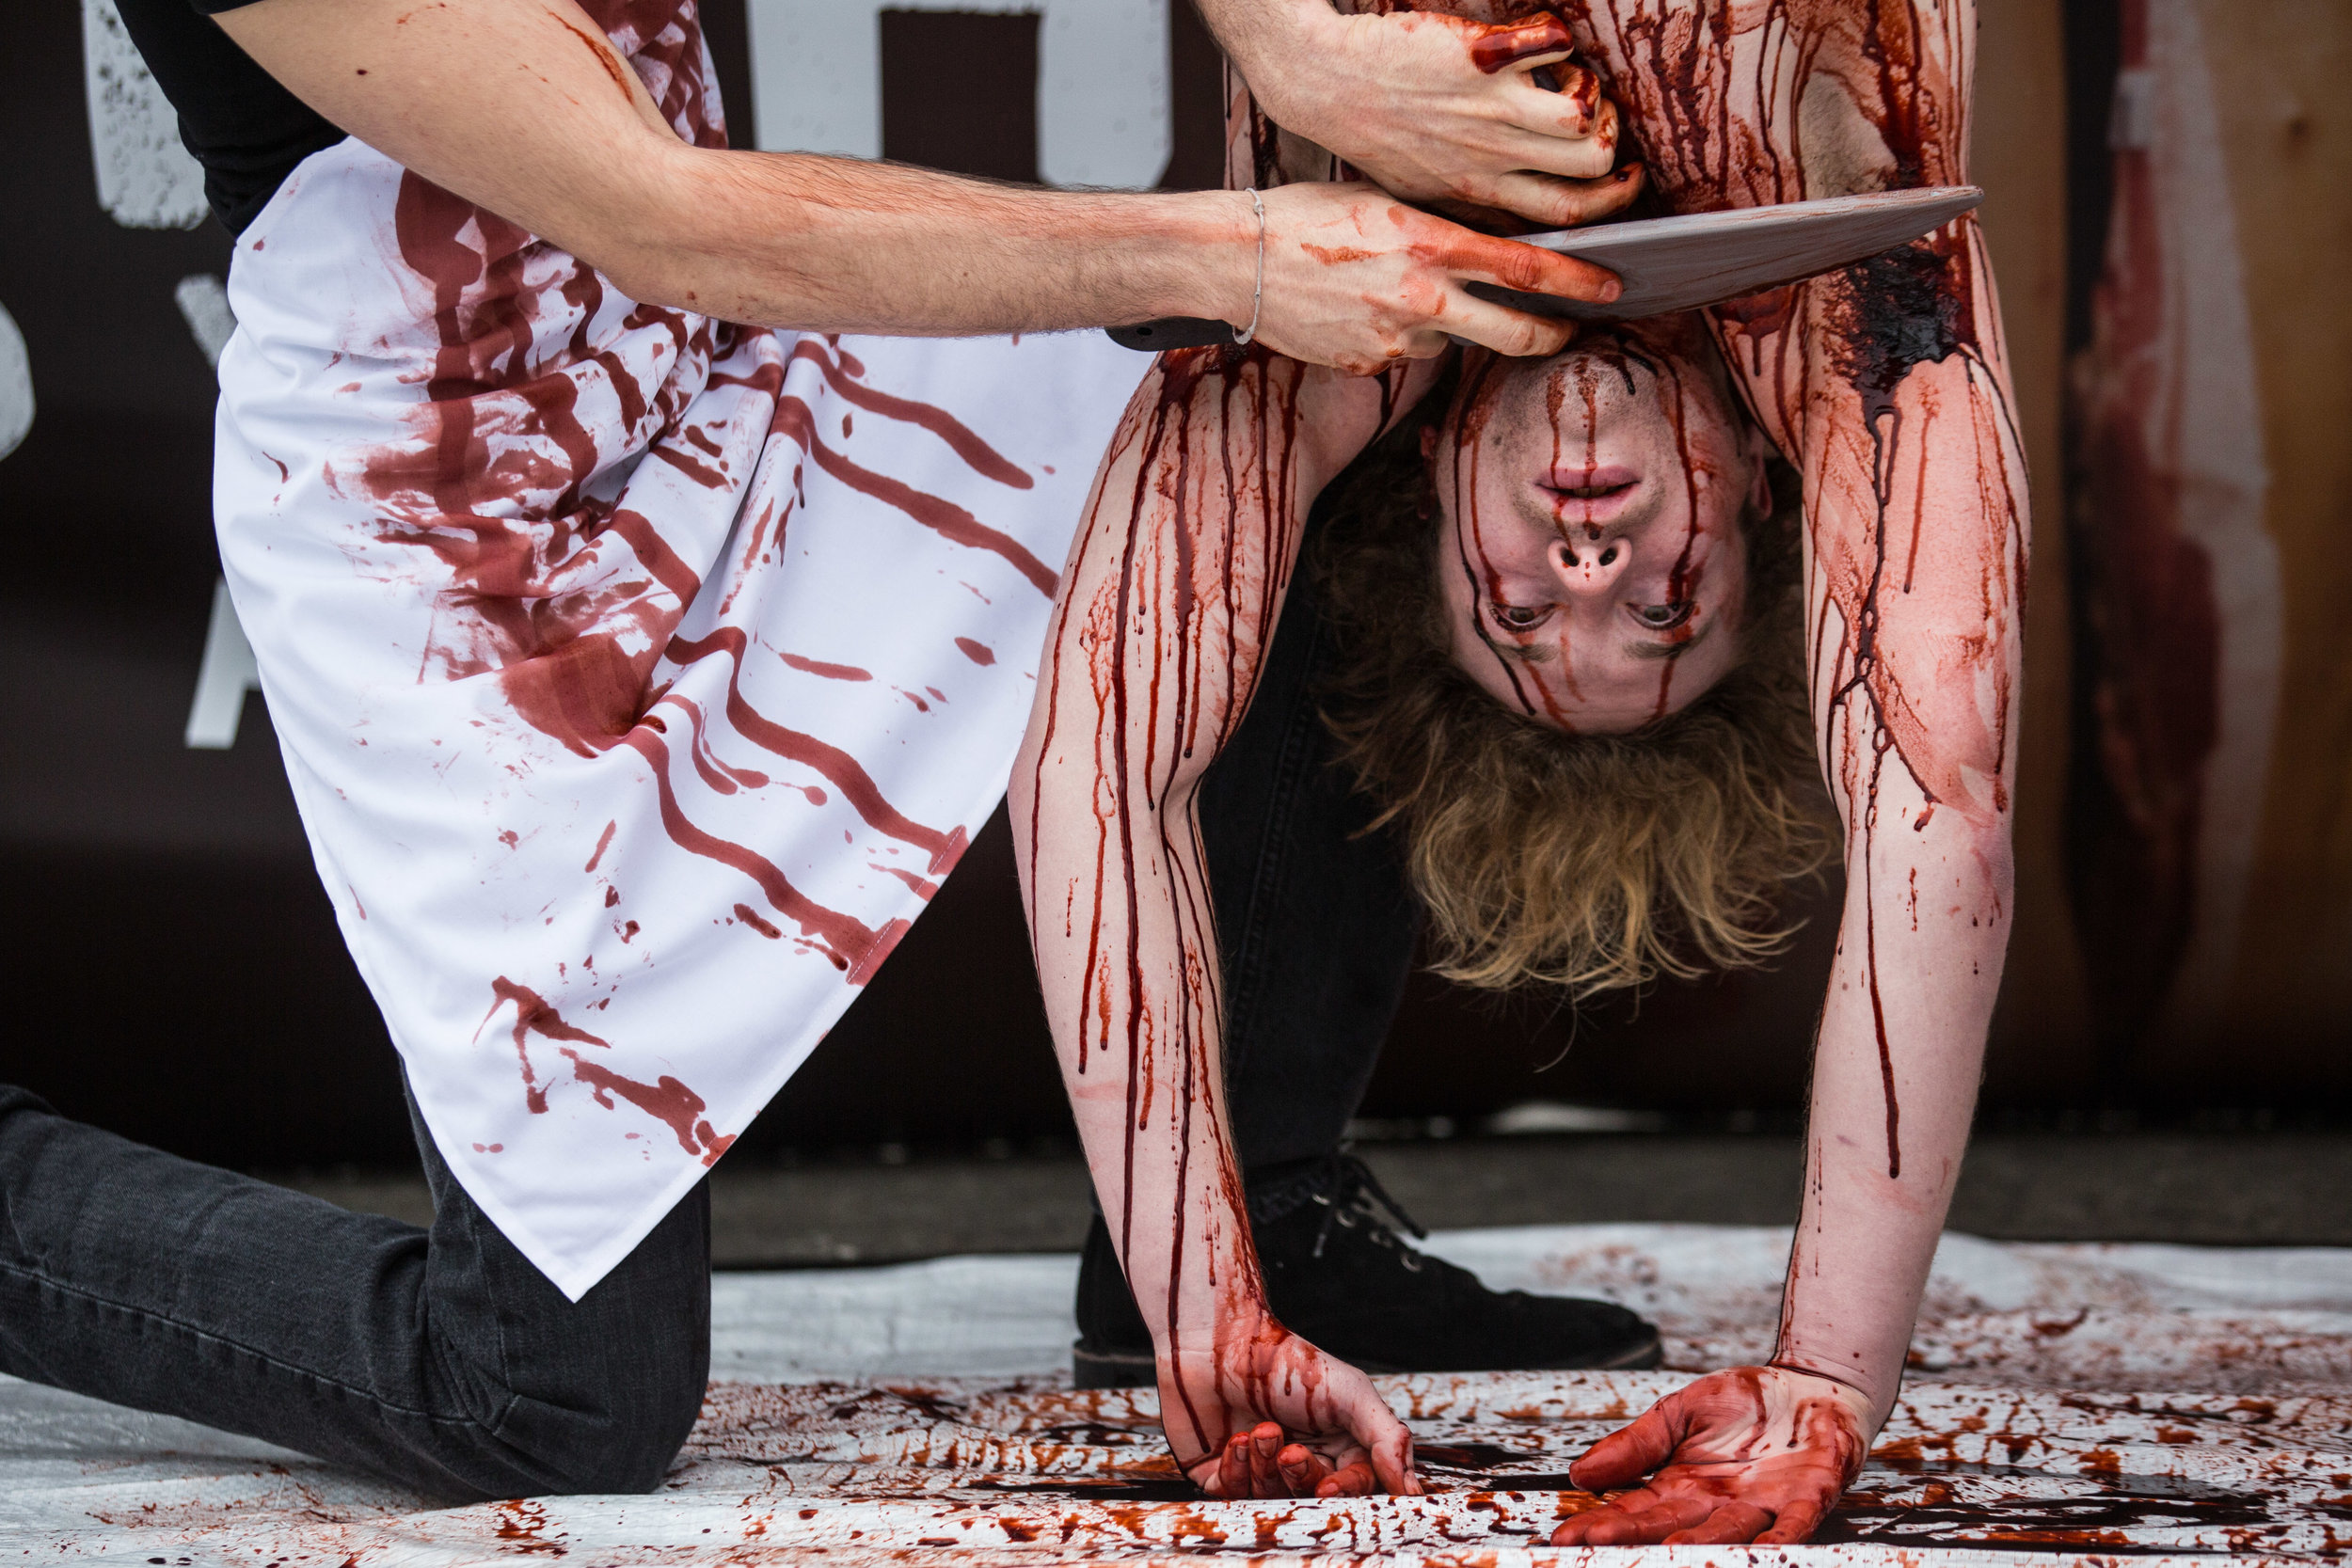 Activists from PETA performed a mock execution of a man to highlight how animals are killed for meat